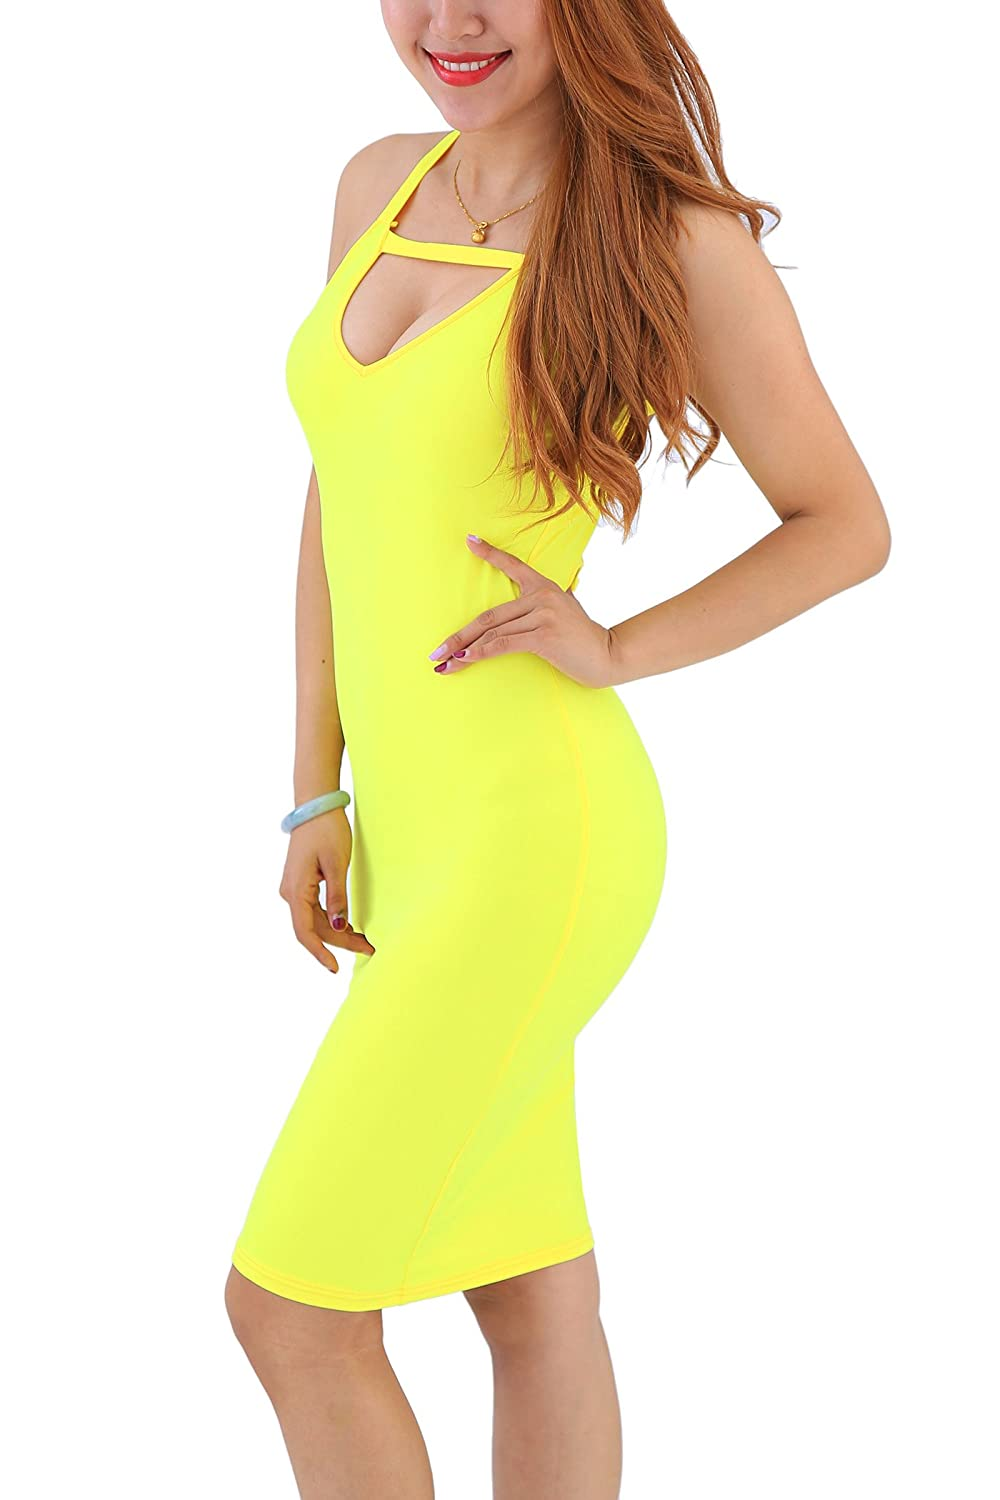 Yming Frauen reizvolle Bodycon-Partei-Verein-Kleid-Backless Sleeveless Verband-Kleid